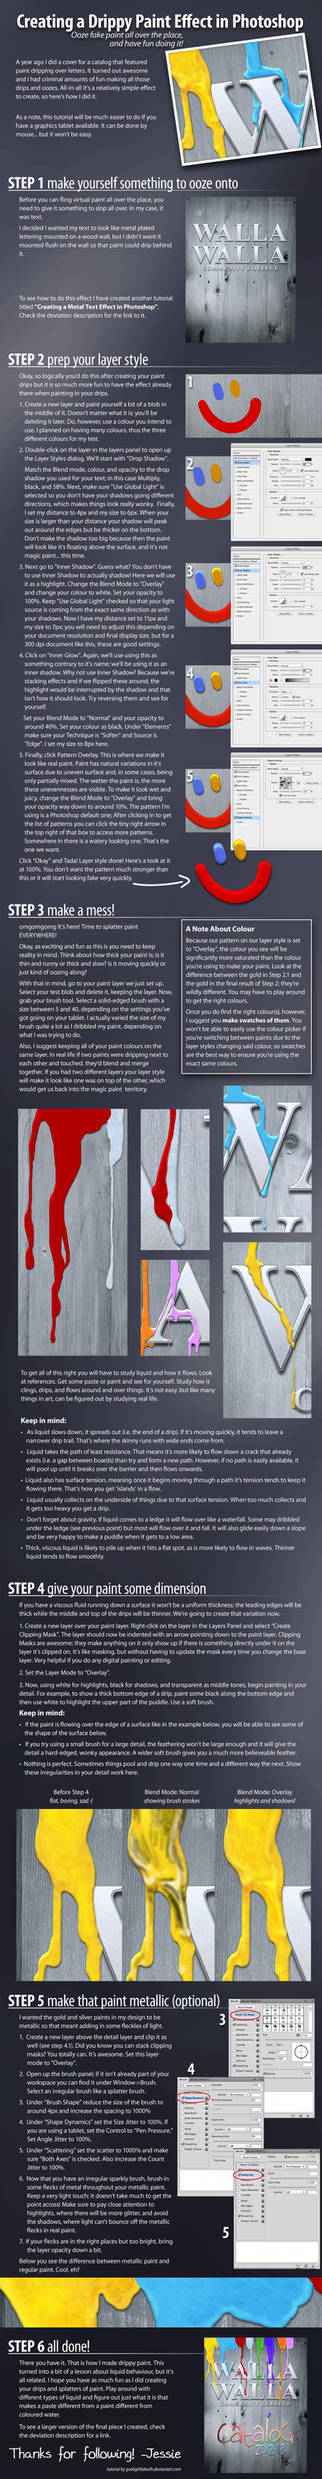 Creating a Drippy Paint Effect in Photoshop by GoaliGrlTilDeath